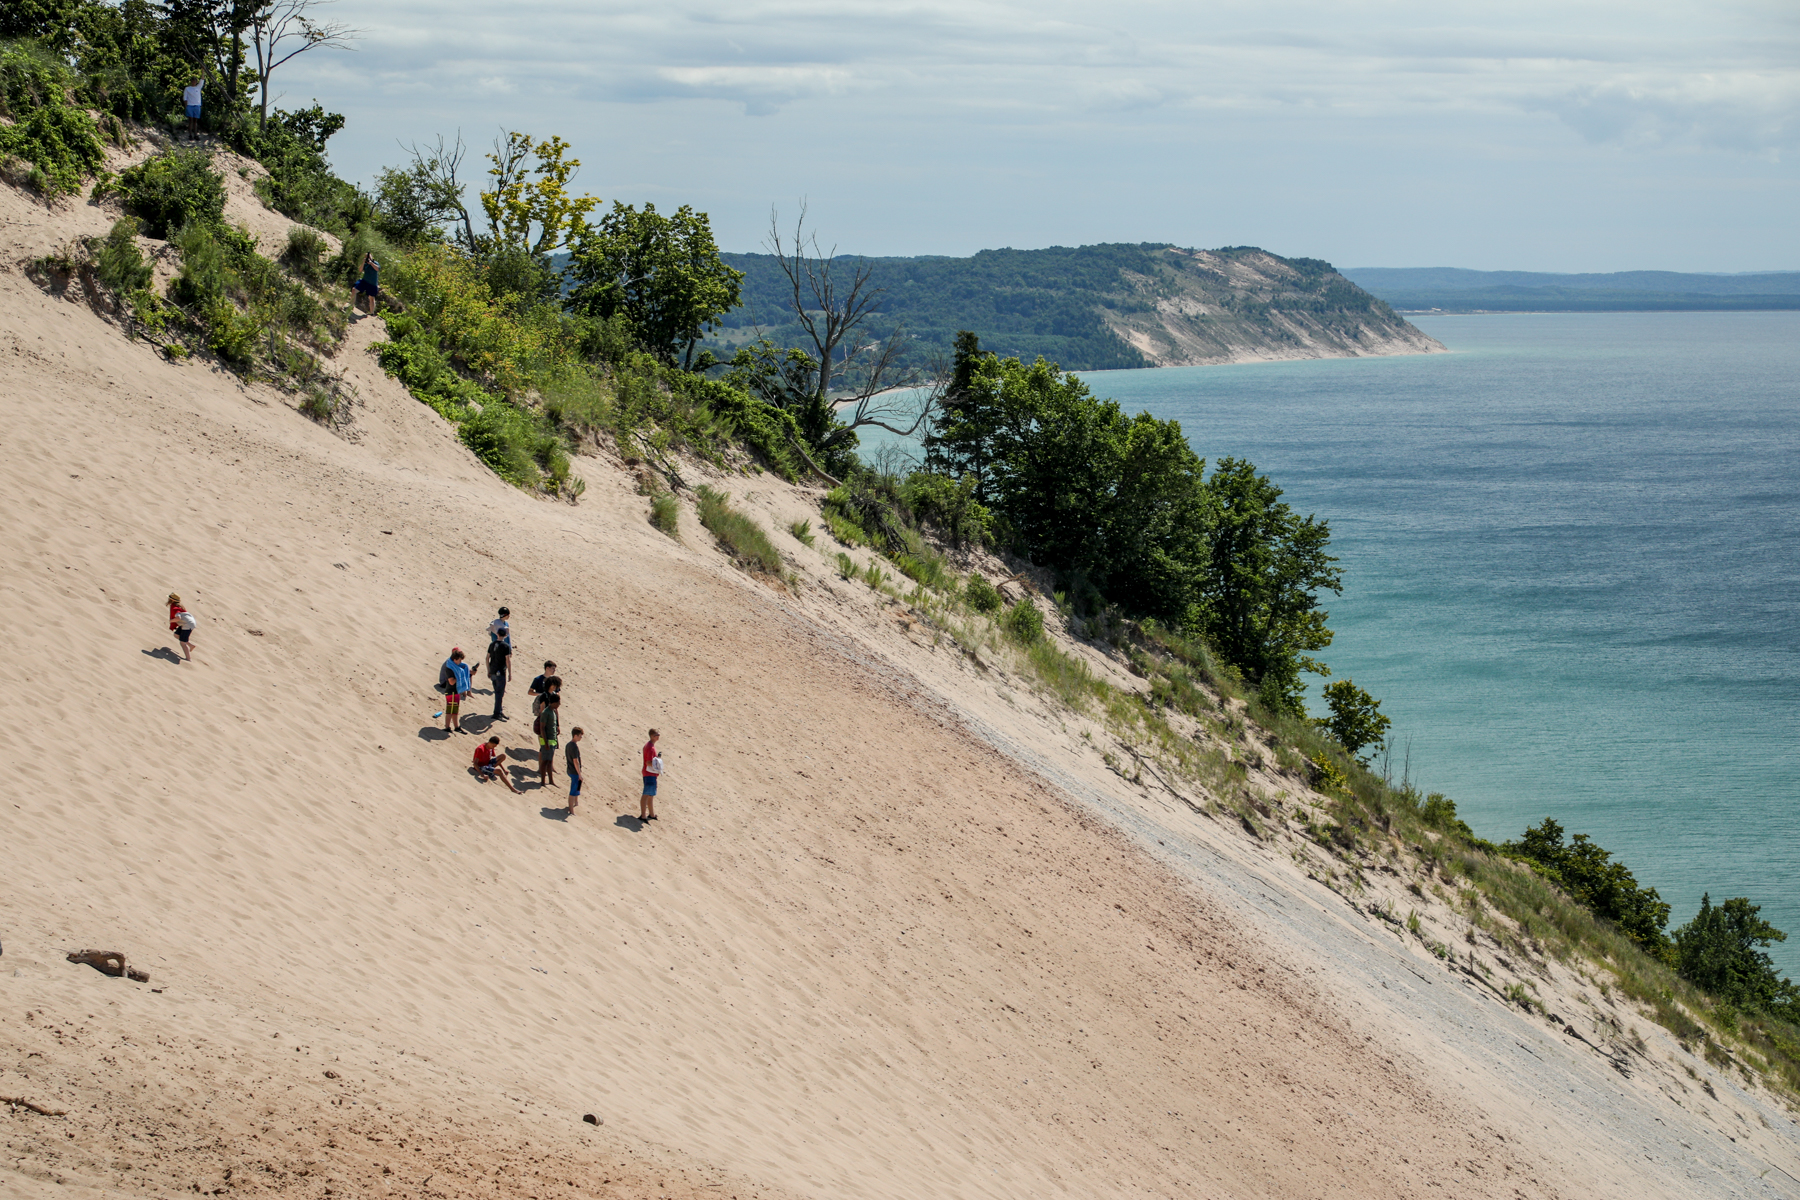 There is nothing like a Pure Michigan summer day at Sleeping Bear Dunes. (Aug. 17, 2019) (Michael Buck/WOOD TV8)